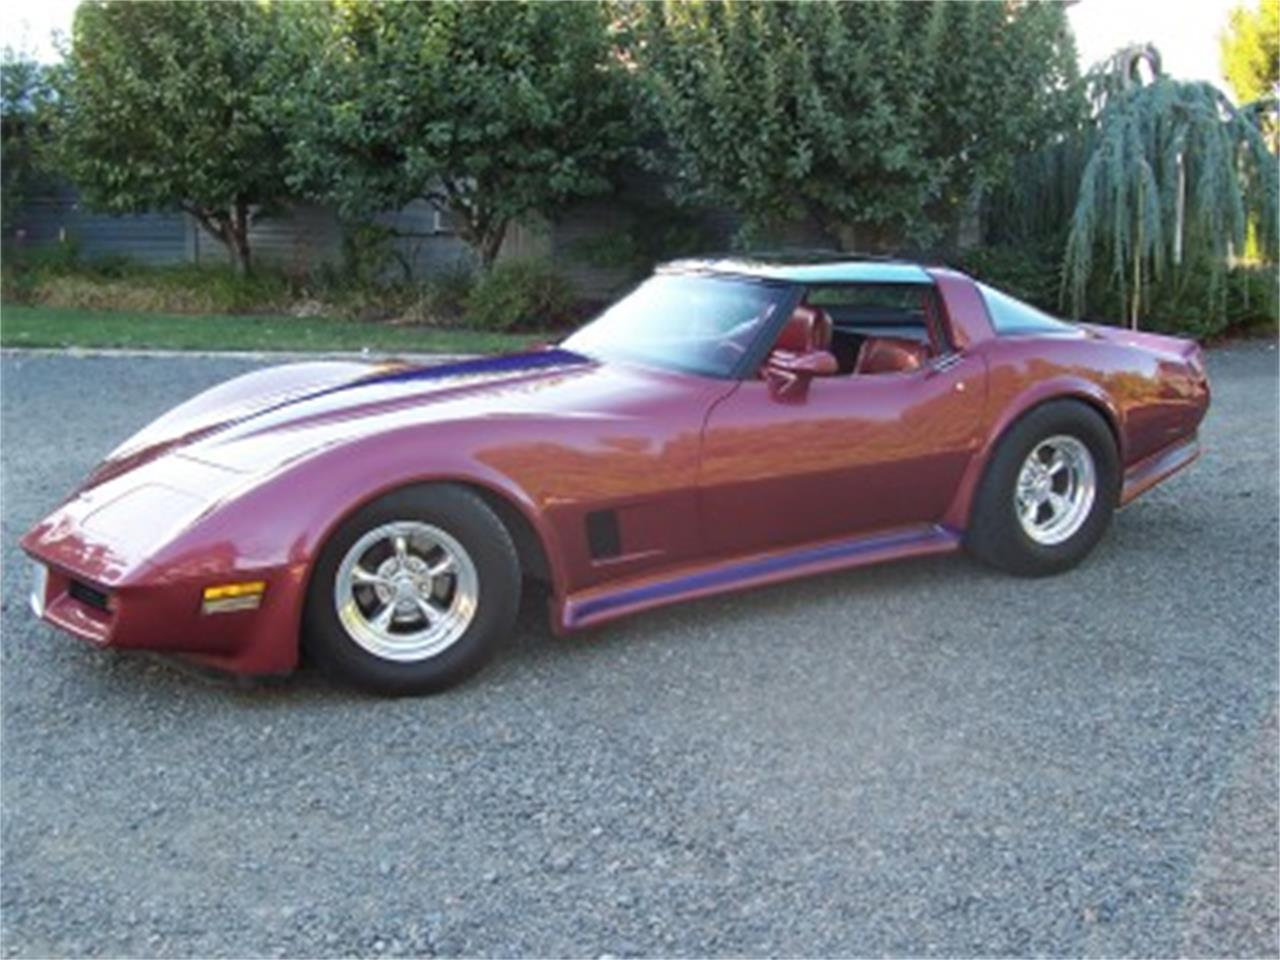 Large Picture of '81 Chevrolet Corvette located in Montana - $18,950.00 Offered by a Private Seller - MYXB